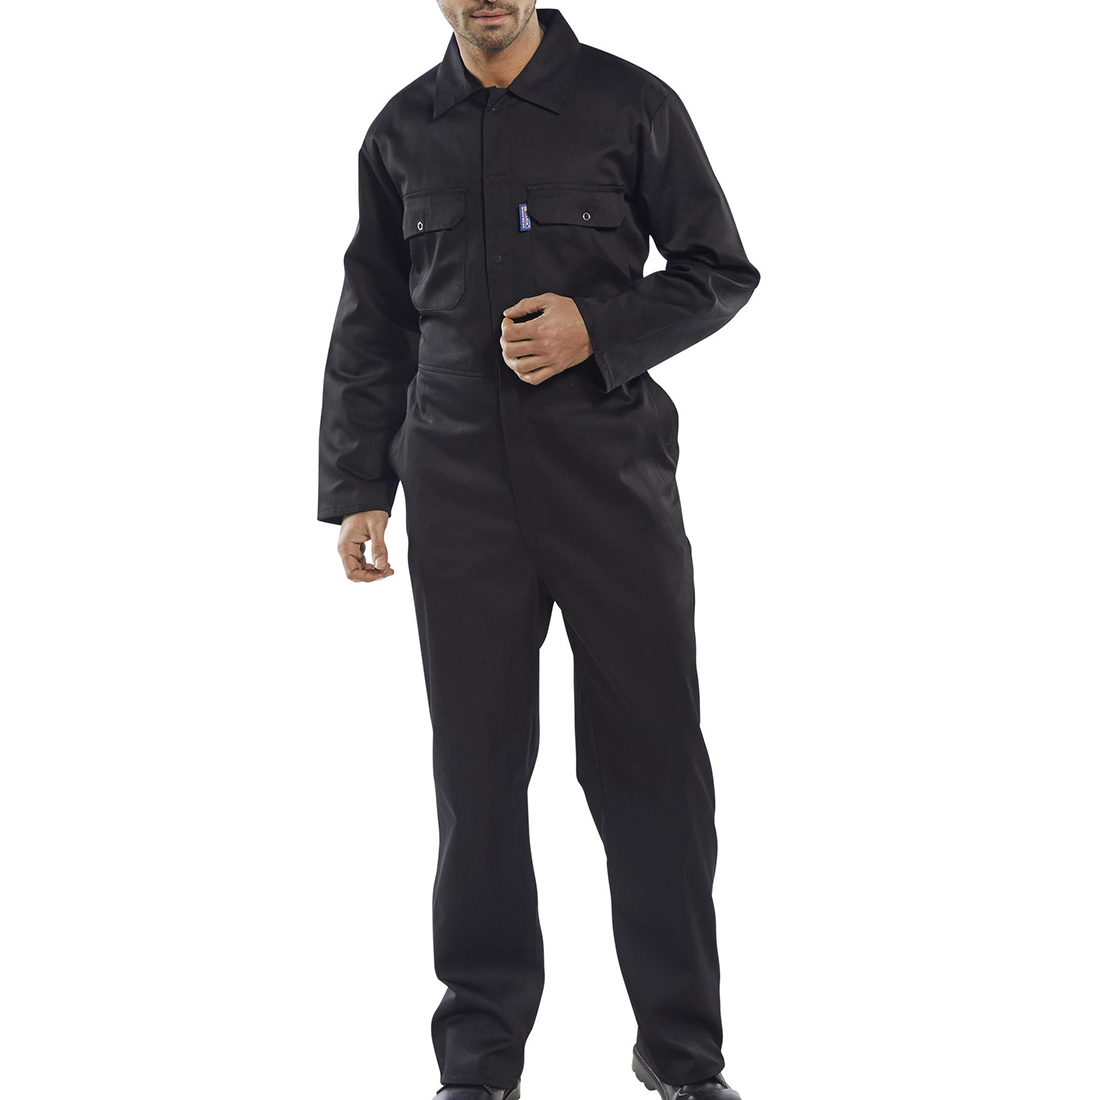 Coverall Basic with Popper Front Opening Polycotton XXXXLarge Black Ref RPCBSBL54 *Approx 3 Day Leadtime*